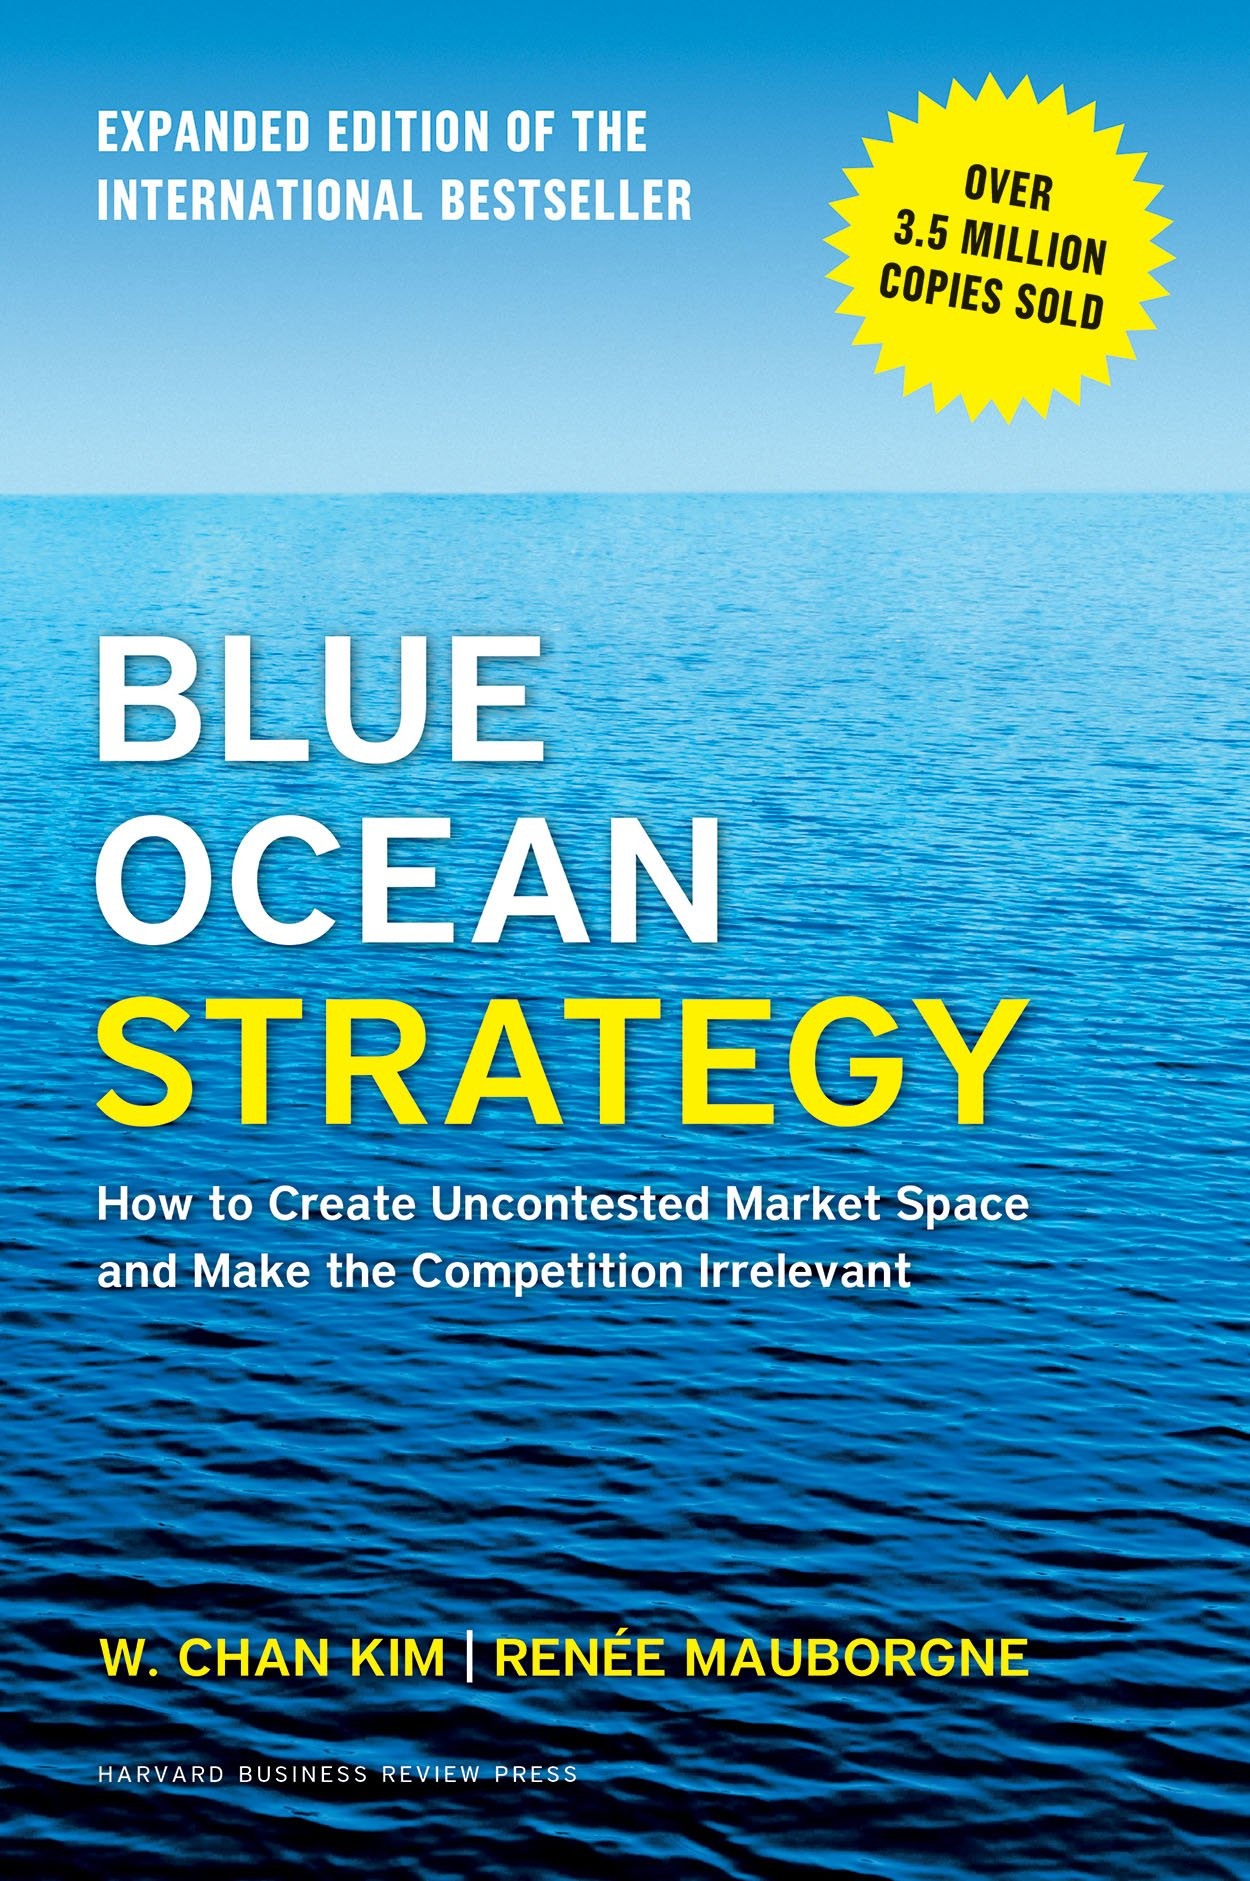 Blue Ocean Strategy Expanded Uncontested product image